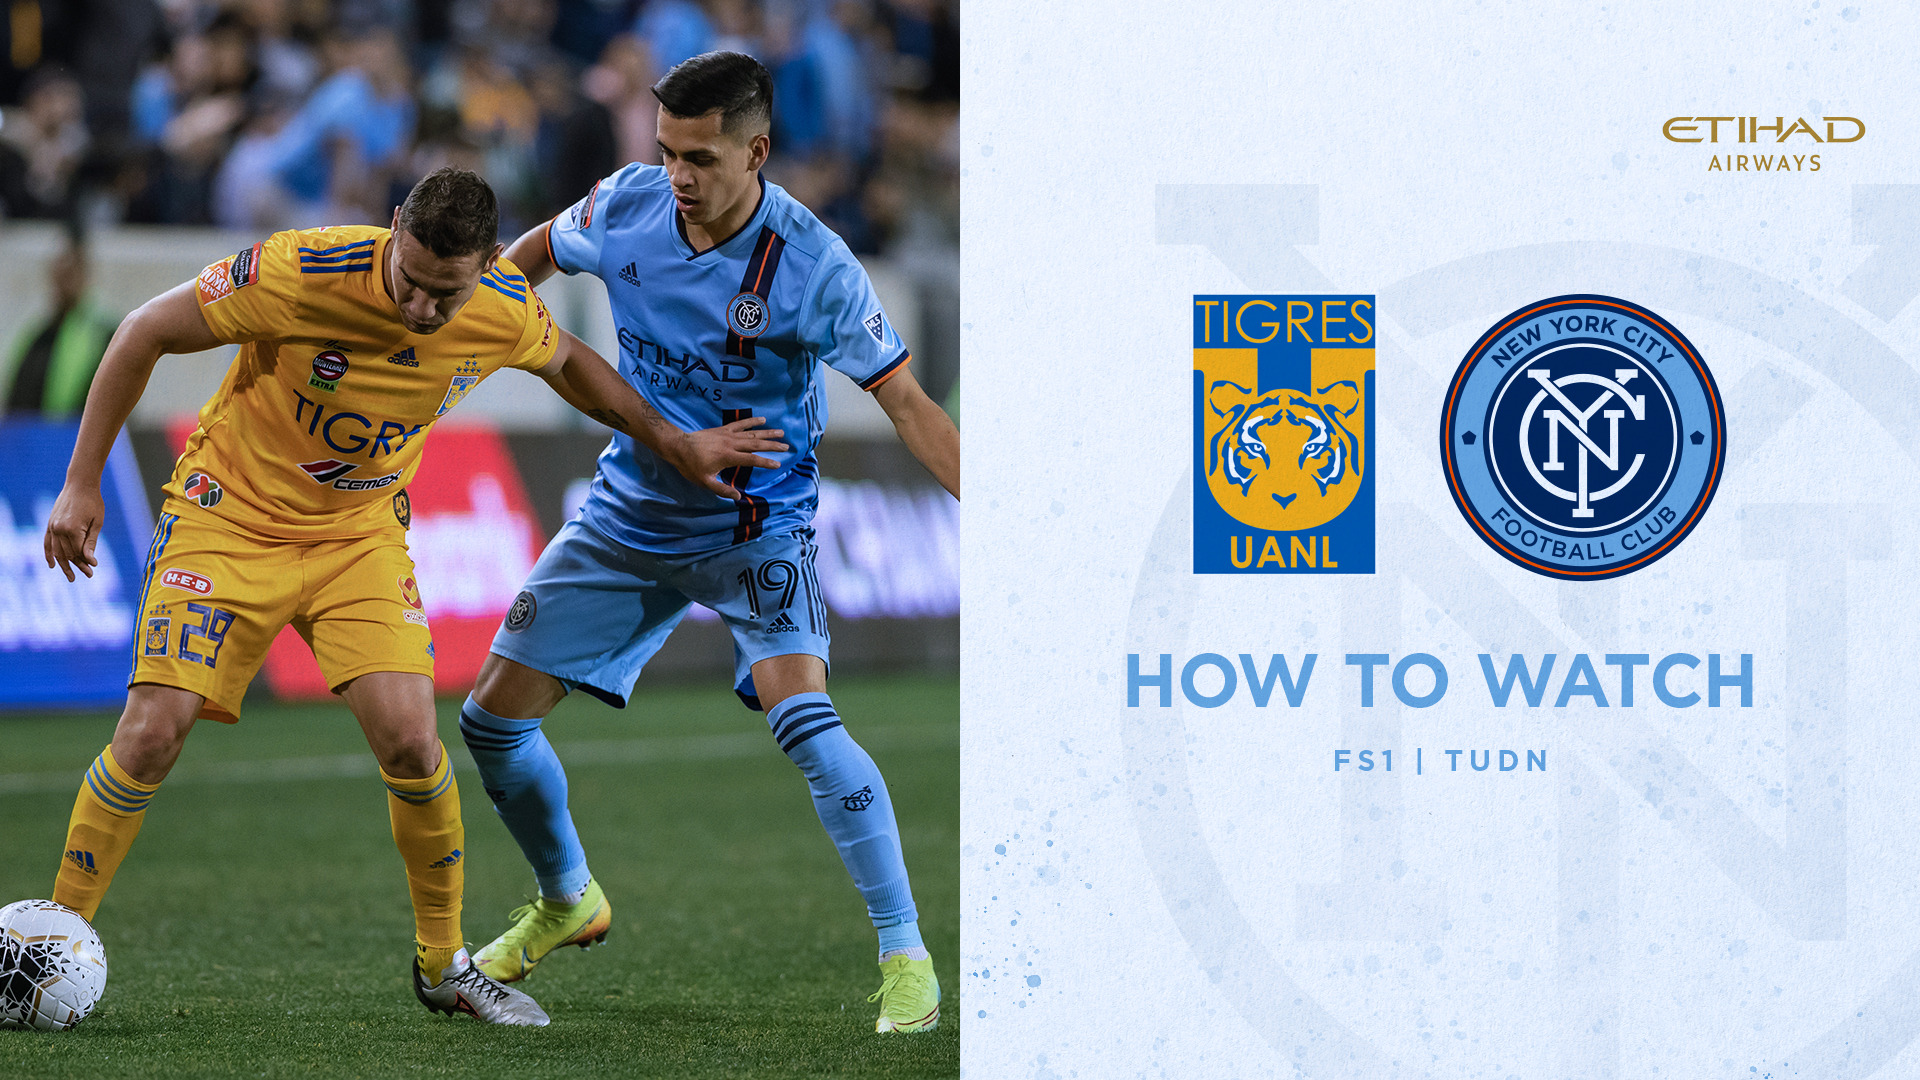 How to Watch Tigres UANL vs. NYCFC | New York City FC